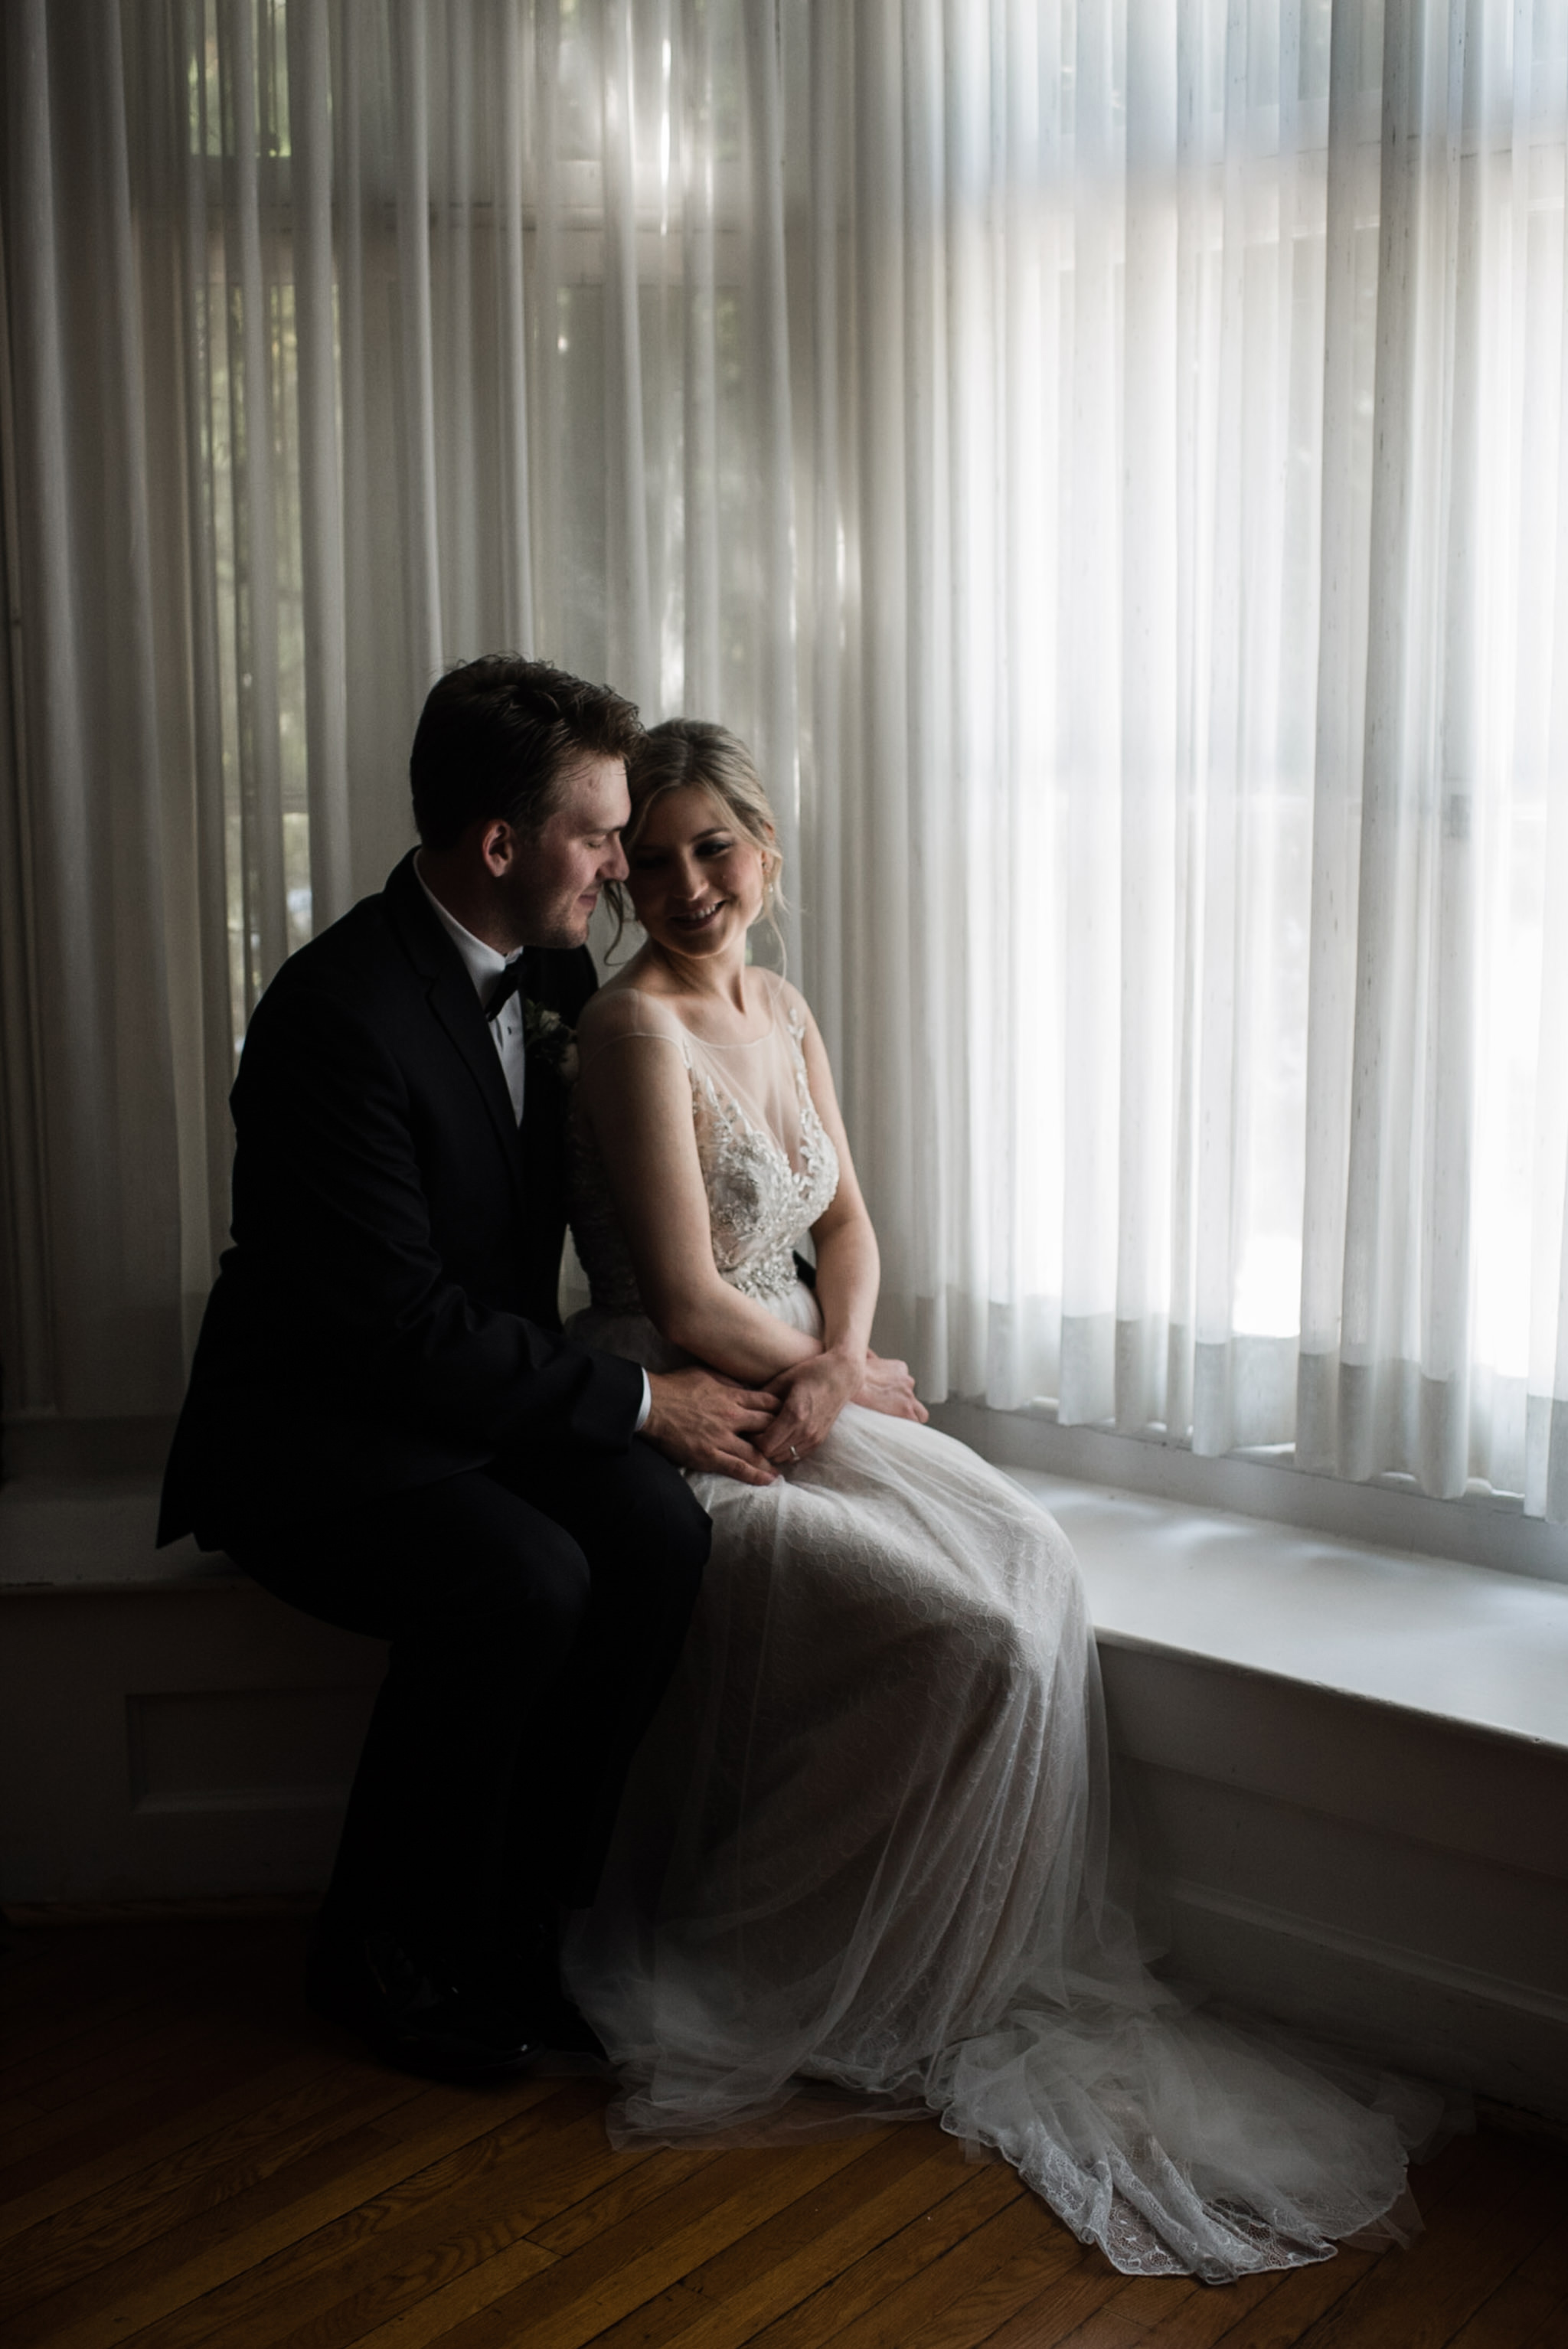 272-elegant-bride-portraits-indoors-wallpaper-toronto-photographer-penryn-park.jpg